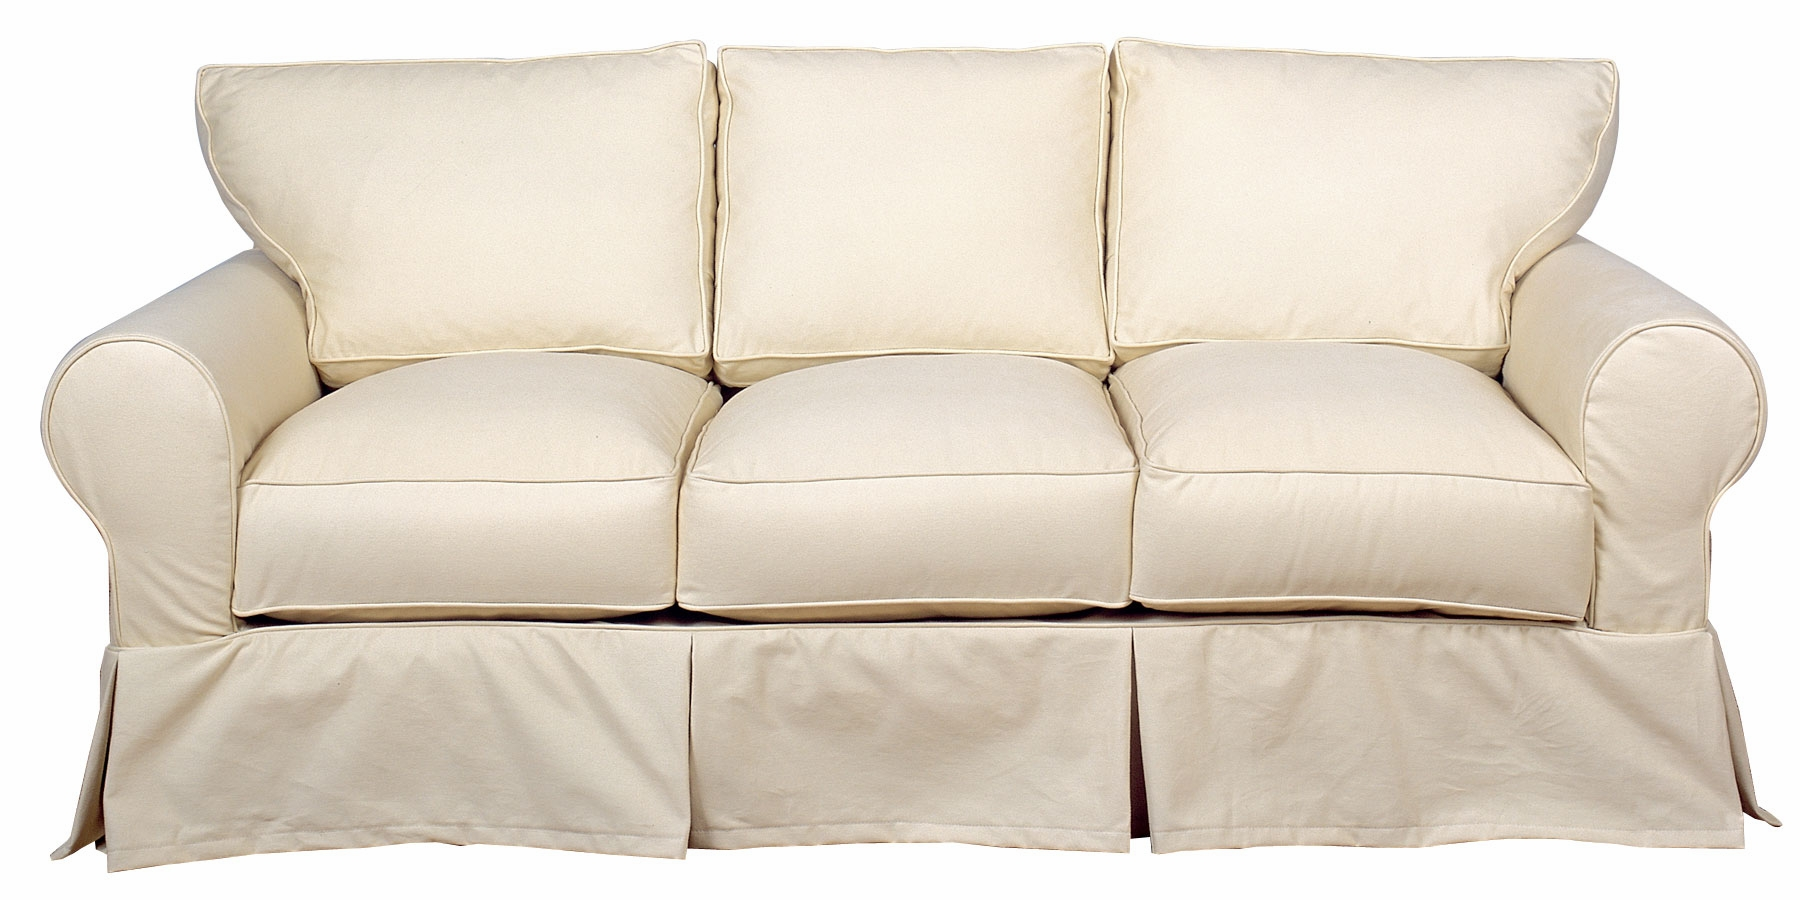 Three Cushion Sofa Slipcover Cushion 3 Sofa Slipcover Slipcovers For Couch Thesofa